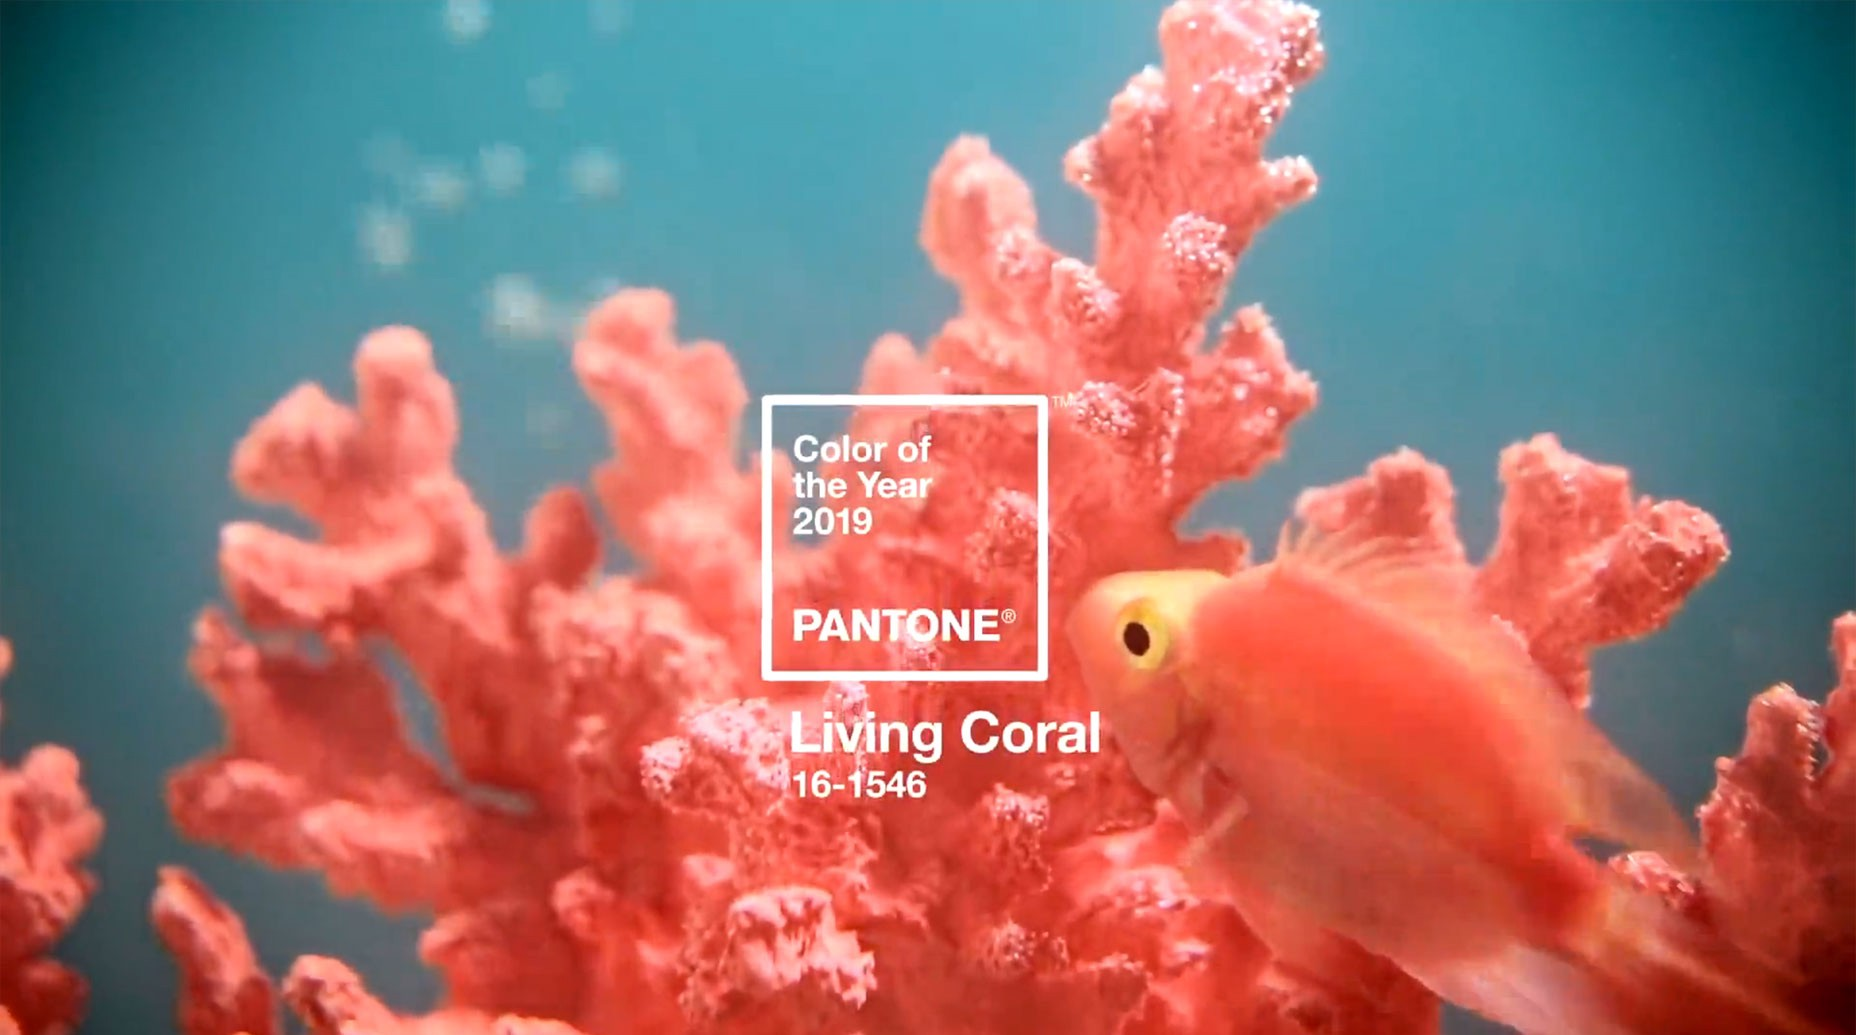 Living Coral is the new trend for the year 2019 – find now!